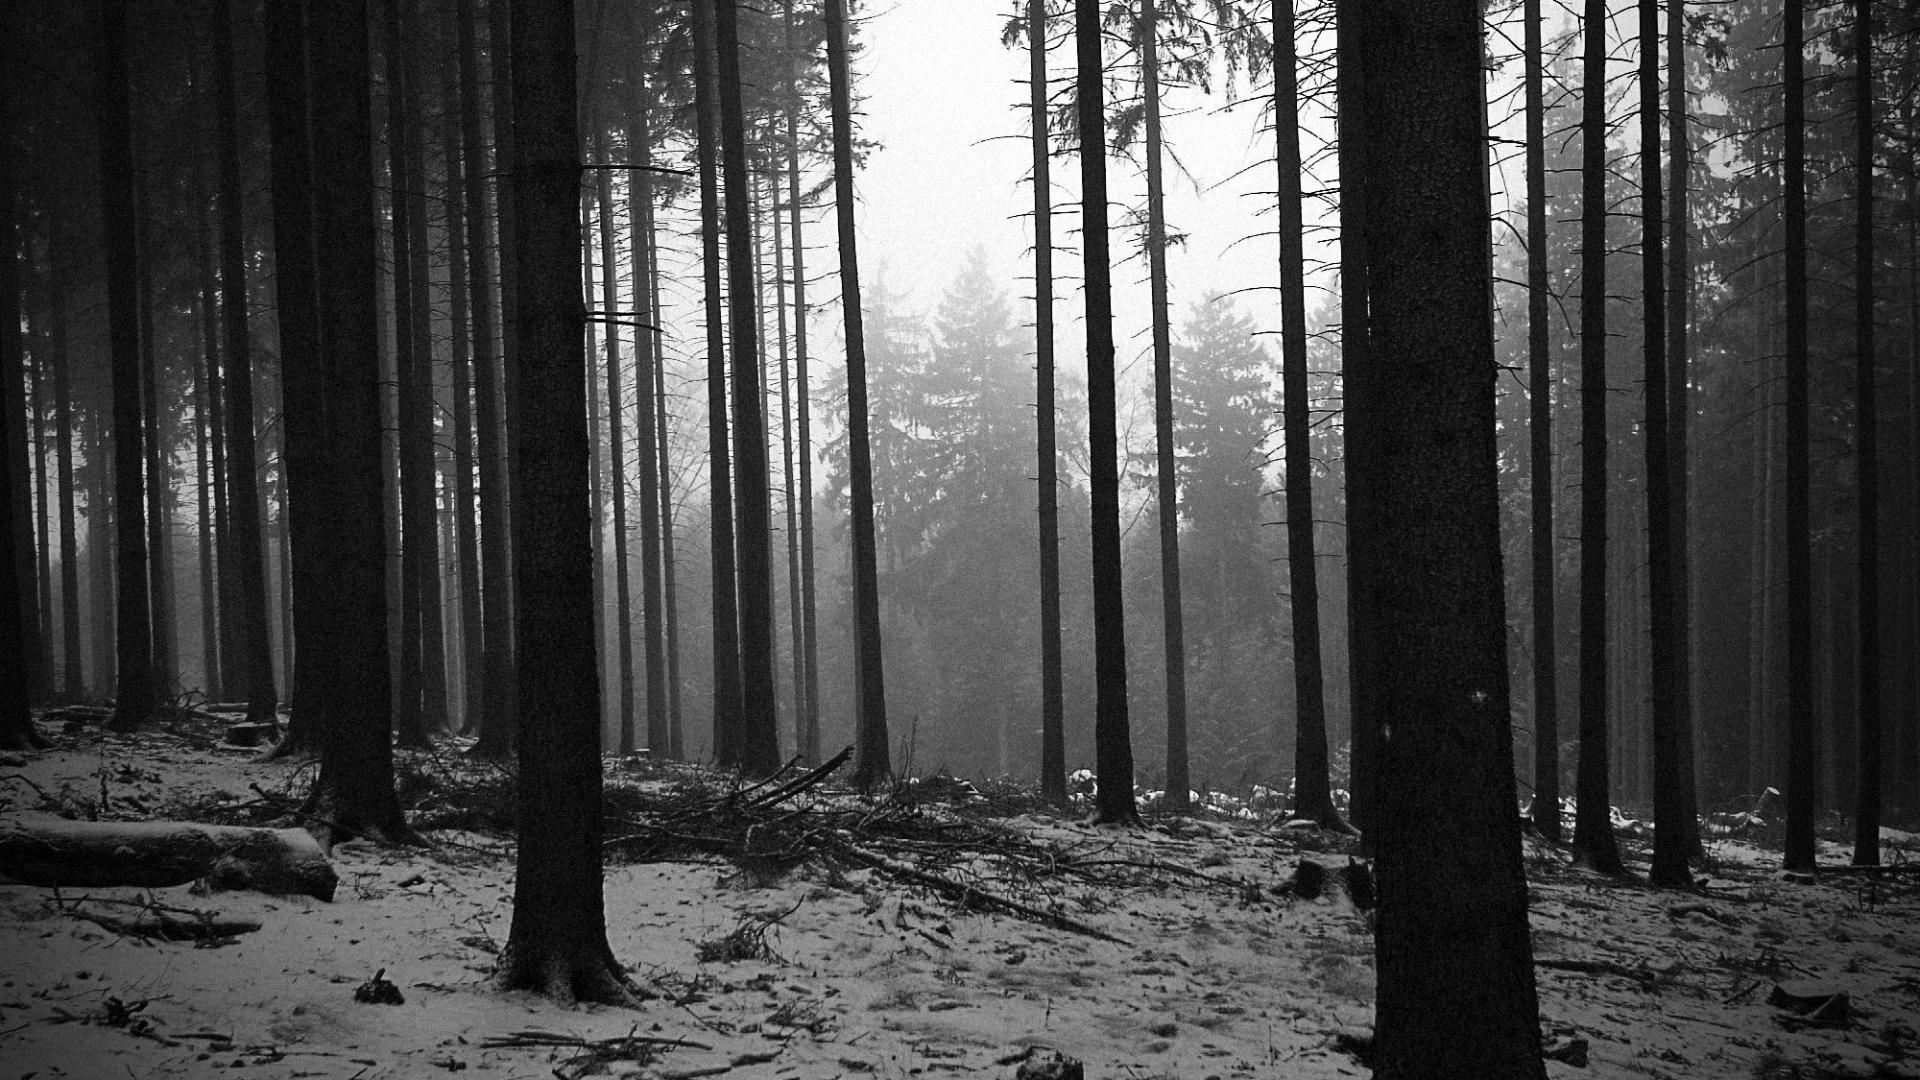 Black and white landscapes trees forest monochrome wallpaper 39675 1920x1080